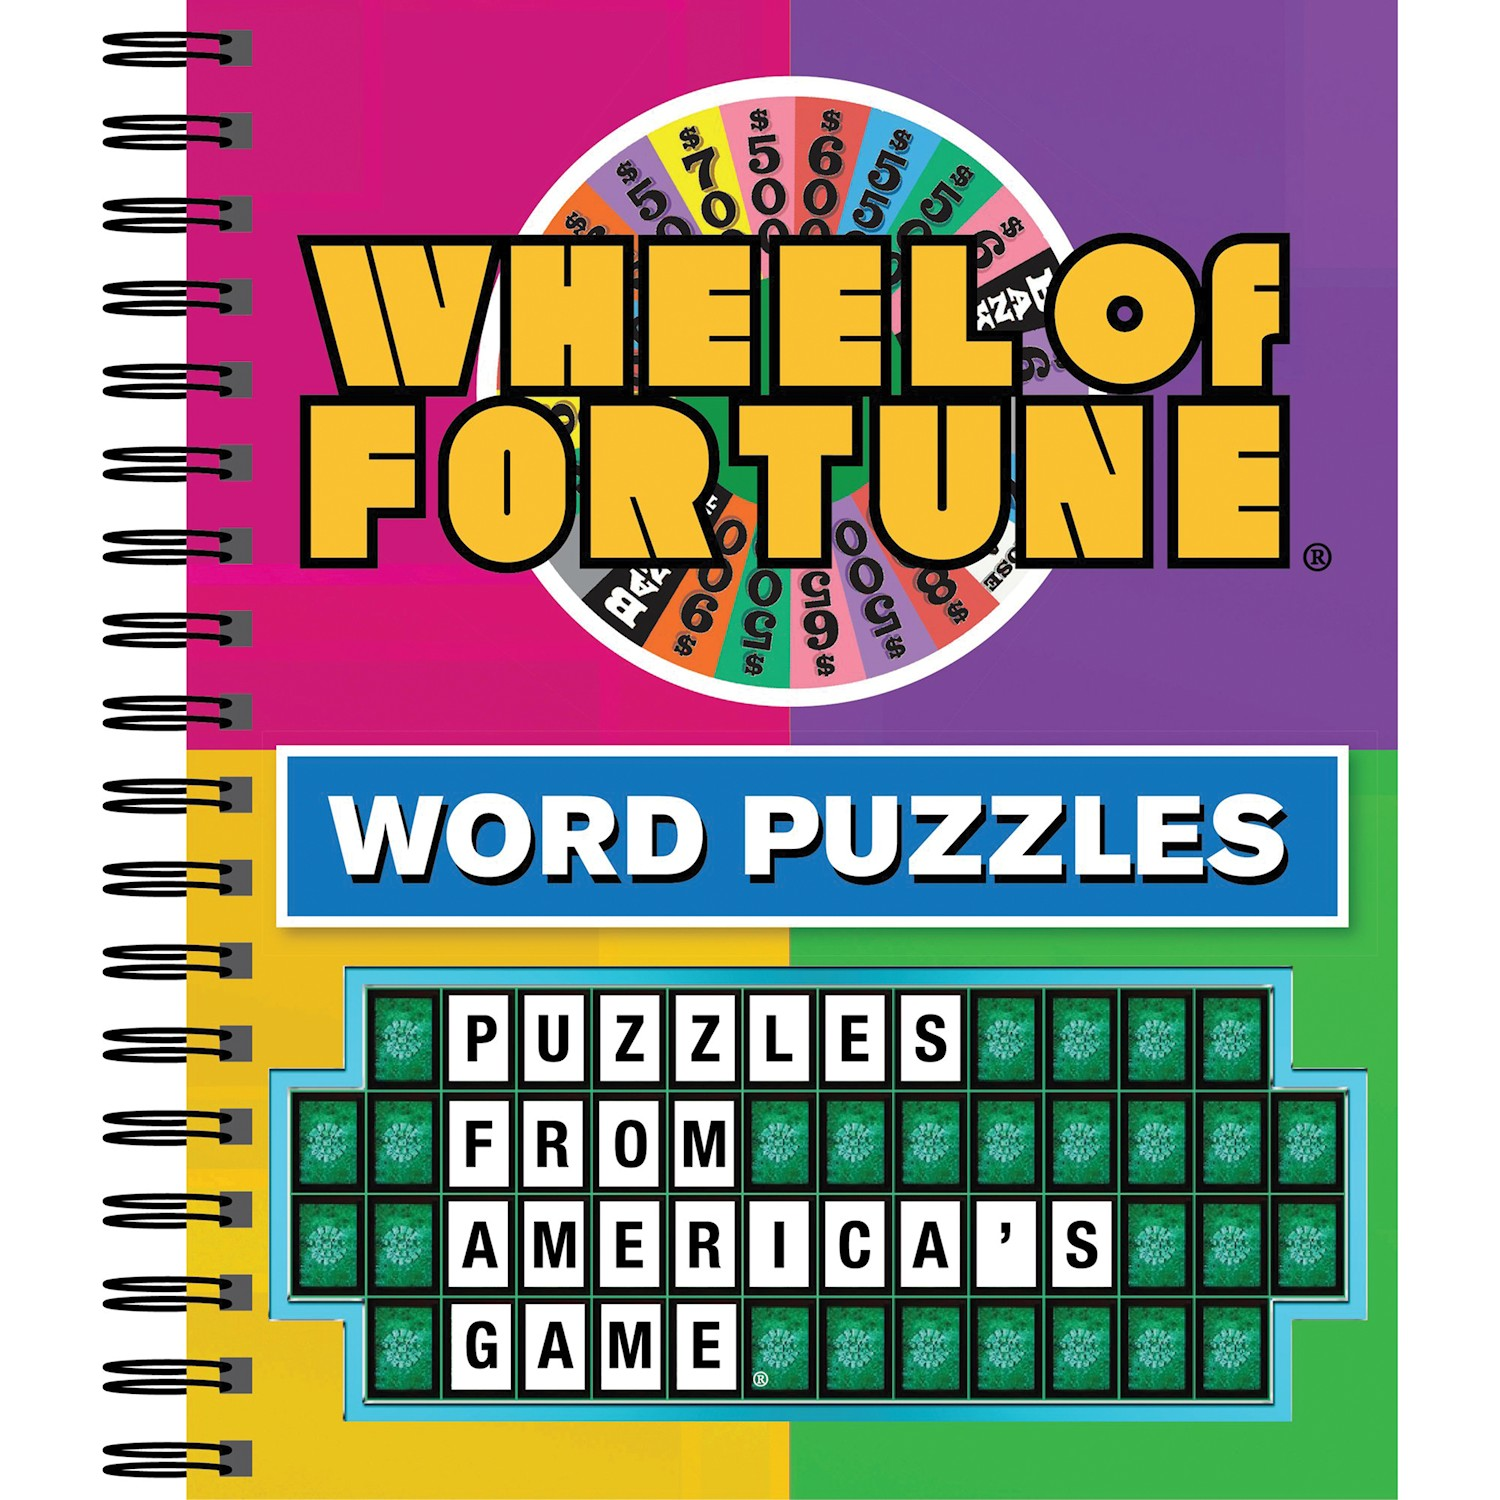 Wheel of Fortune Puzzles